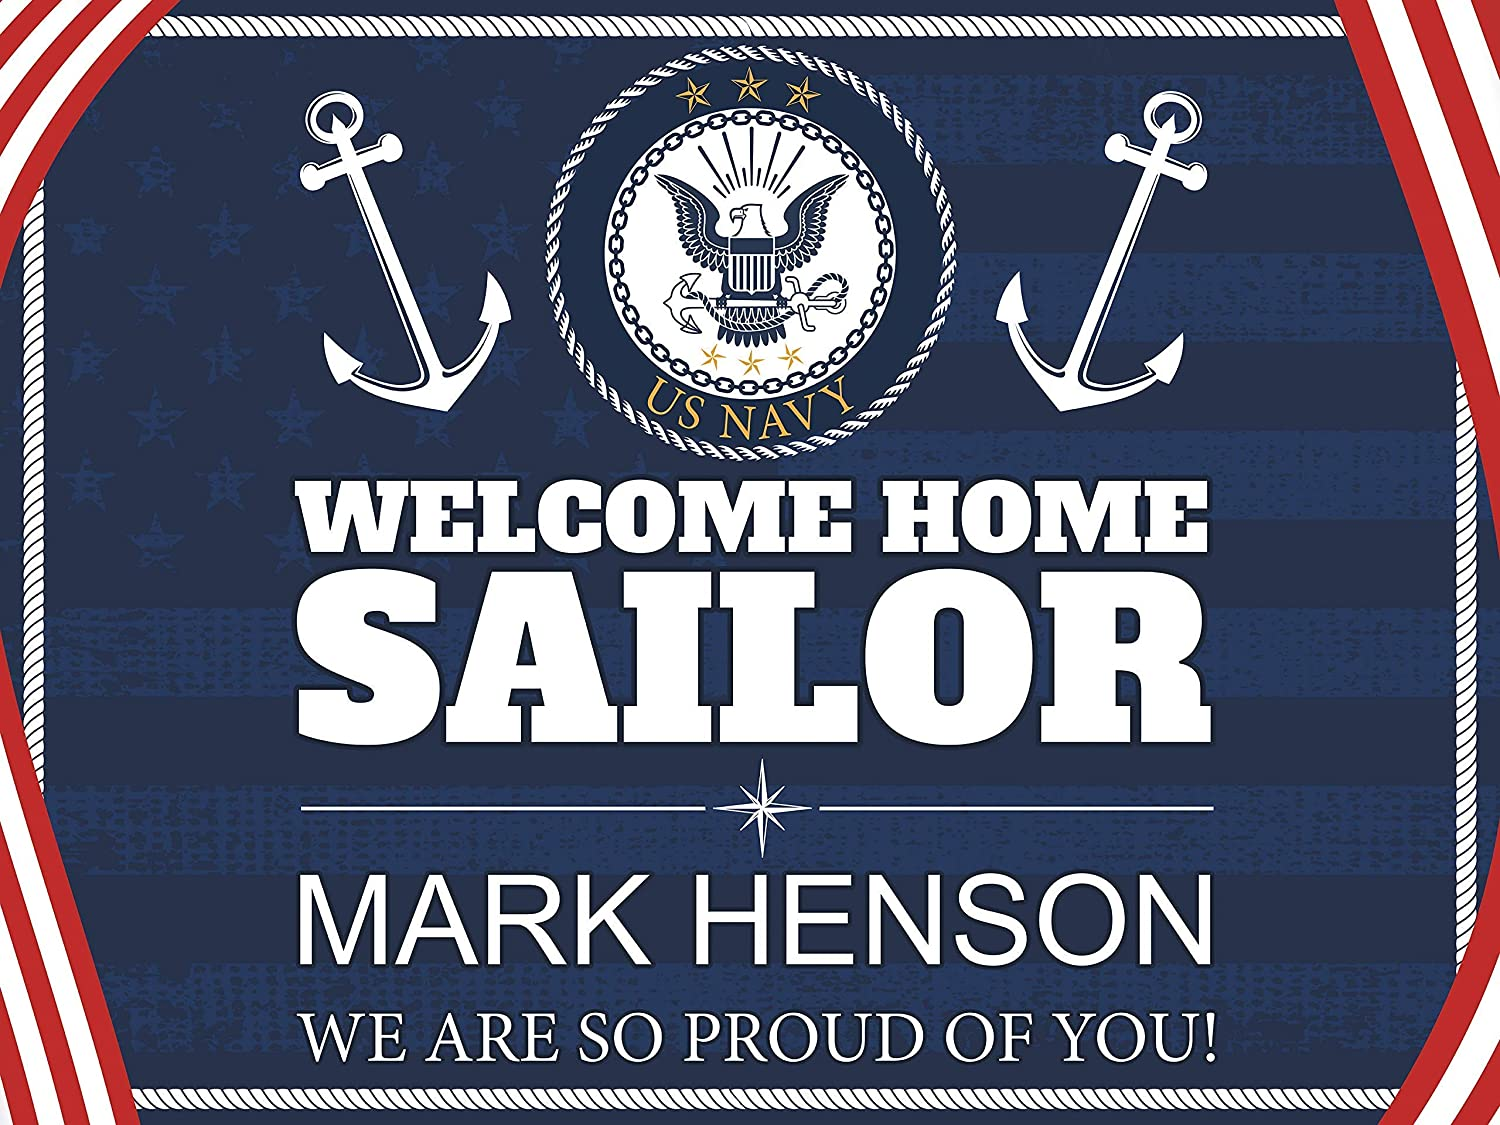 US Navy Welcome Home Banner, US Navy Banner, Navy Welcome Home Banner, US Navy Decor, Military Banner, Welcome Celebration, Welcome Home Banner, Family Reunion Poster, Size 48x36, 48x24, 36x24, 24x18